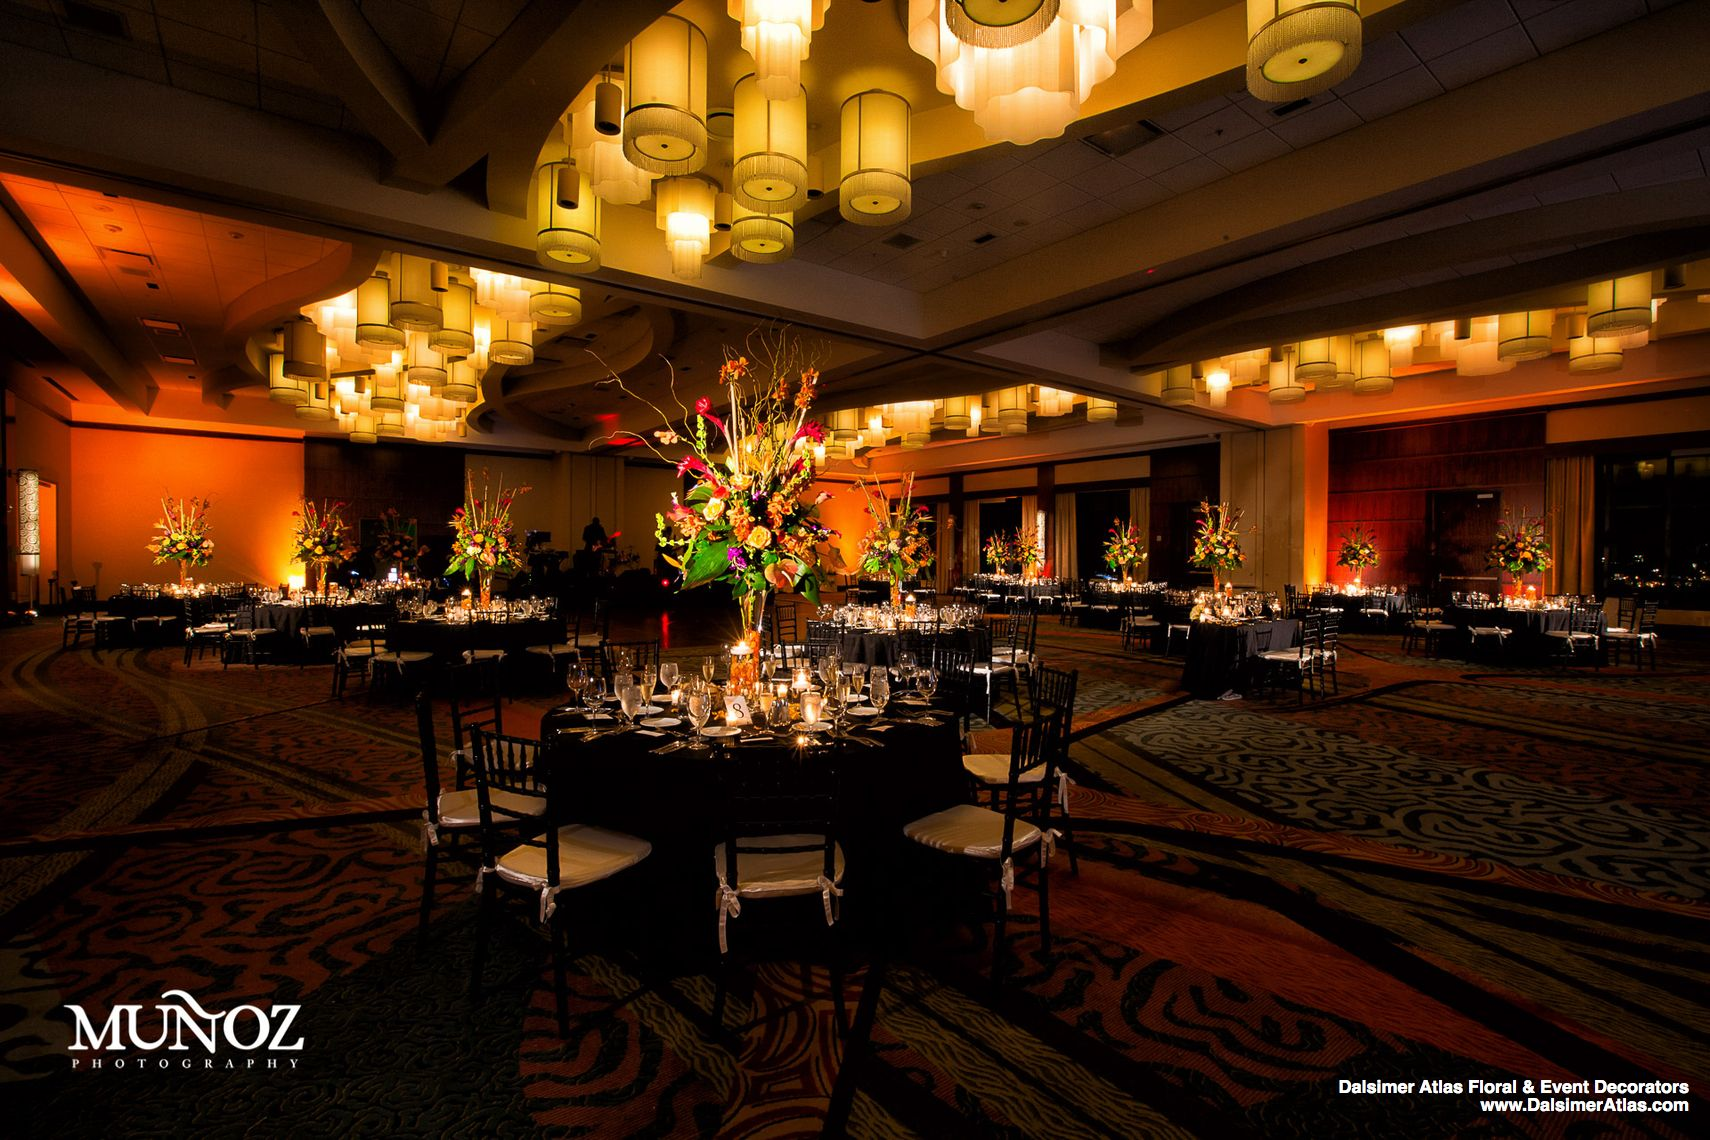 wedding-florist-flowers-decorations-wedding-marriott-harbor-beach-fort-lauderdale-florida-dalsimer-atlas-14